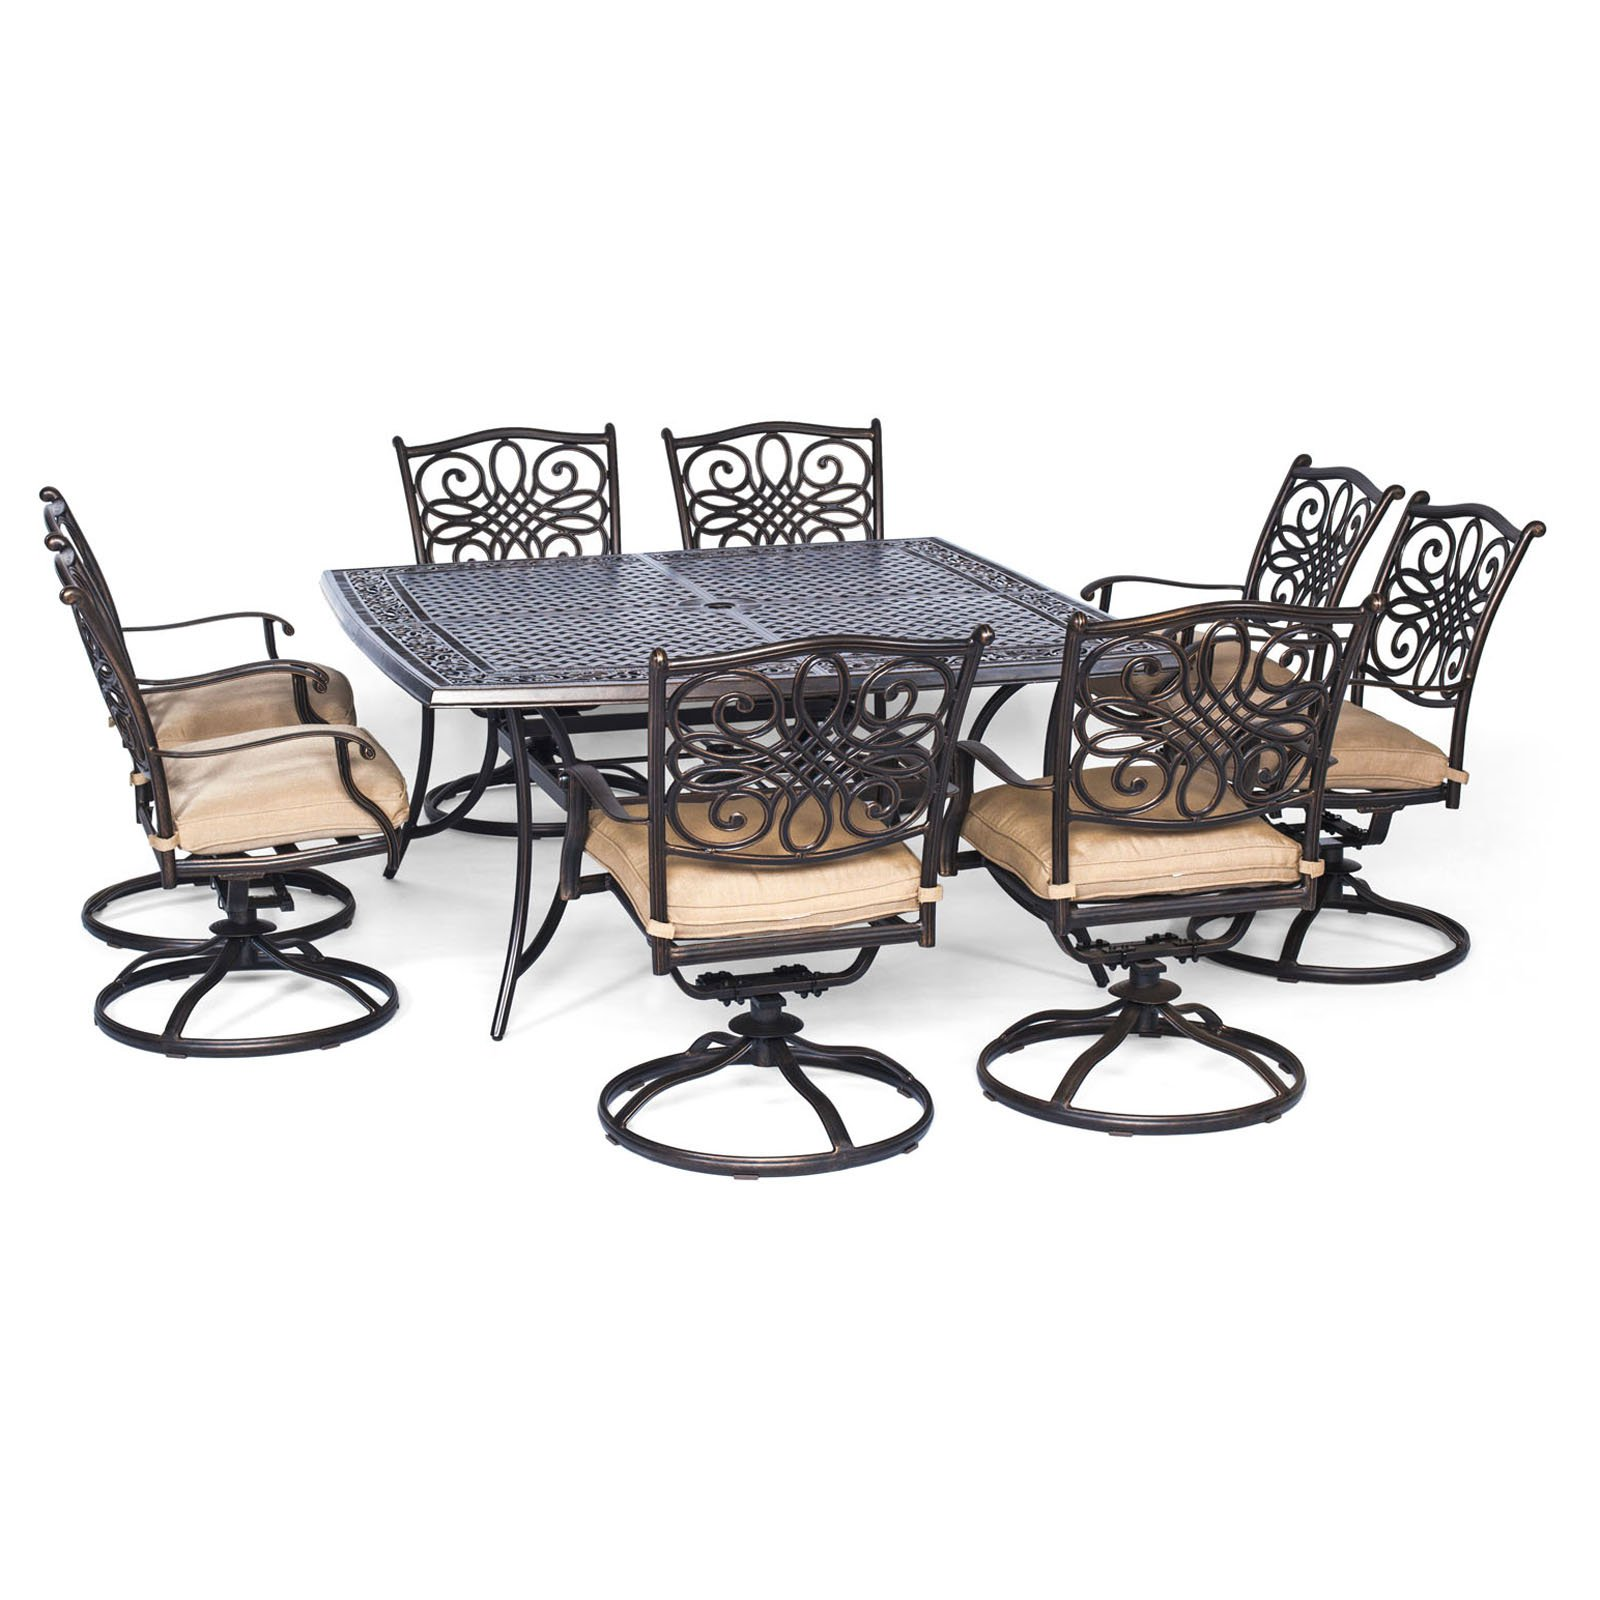 Hanover Outdoor Traditions 9 Piece Dining Set with Large Square Table and 9  Swivel Rockers, Natural Oat/Bronze